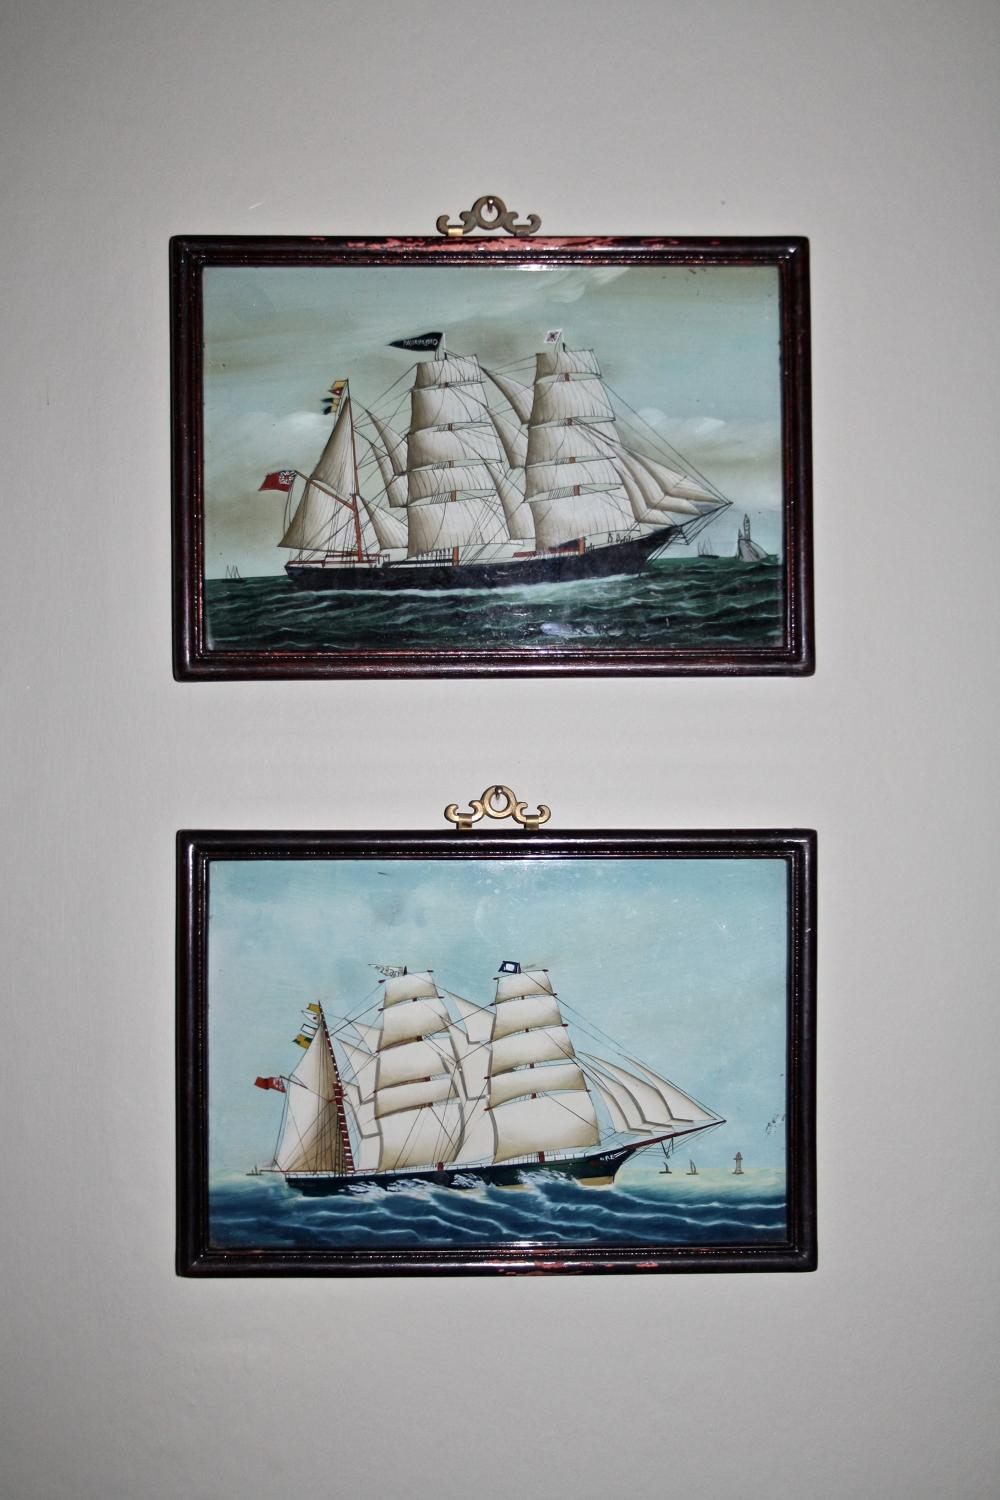 Pair of reverse glass painted pictures